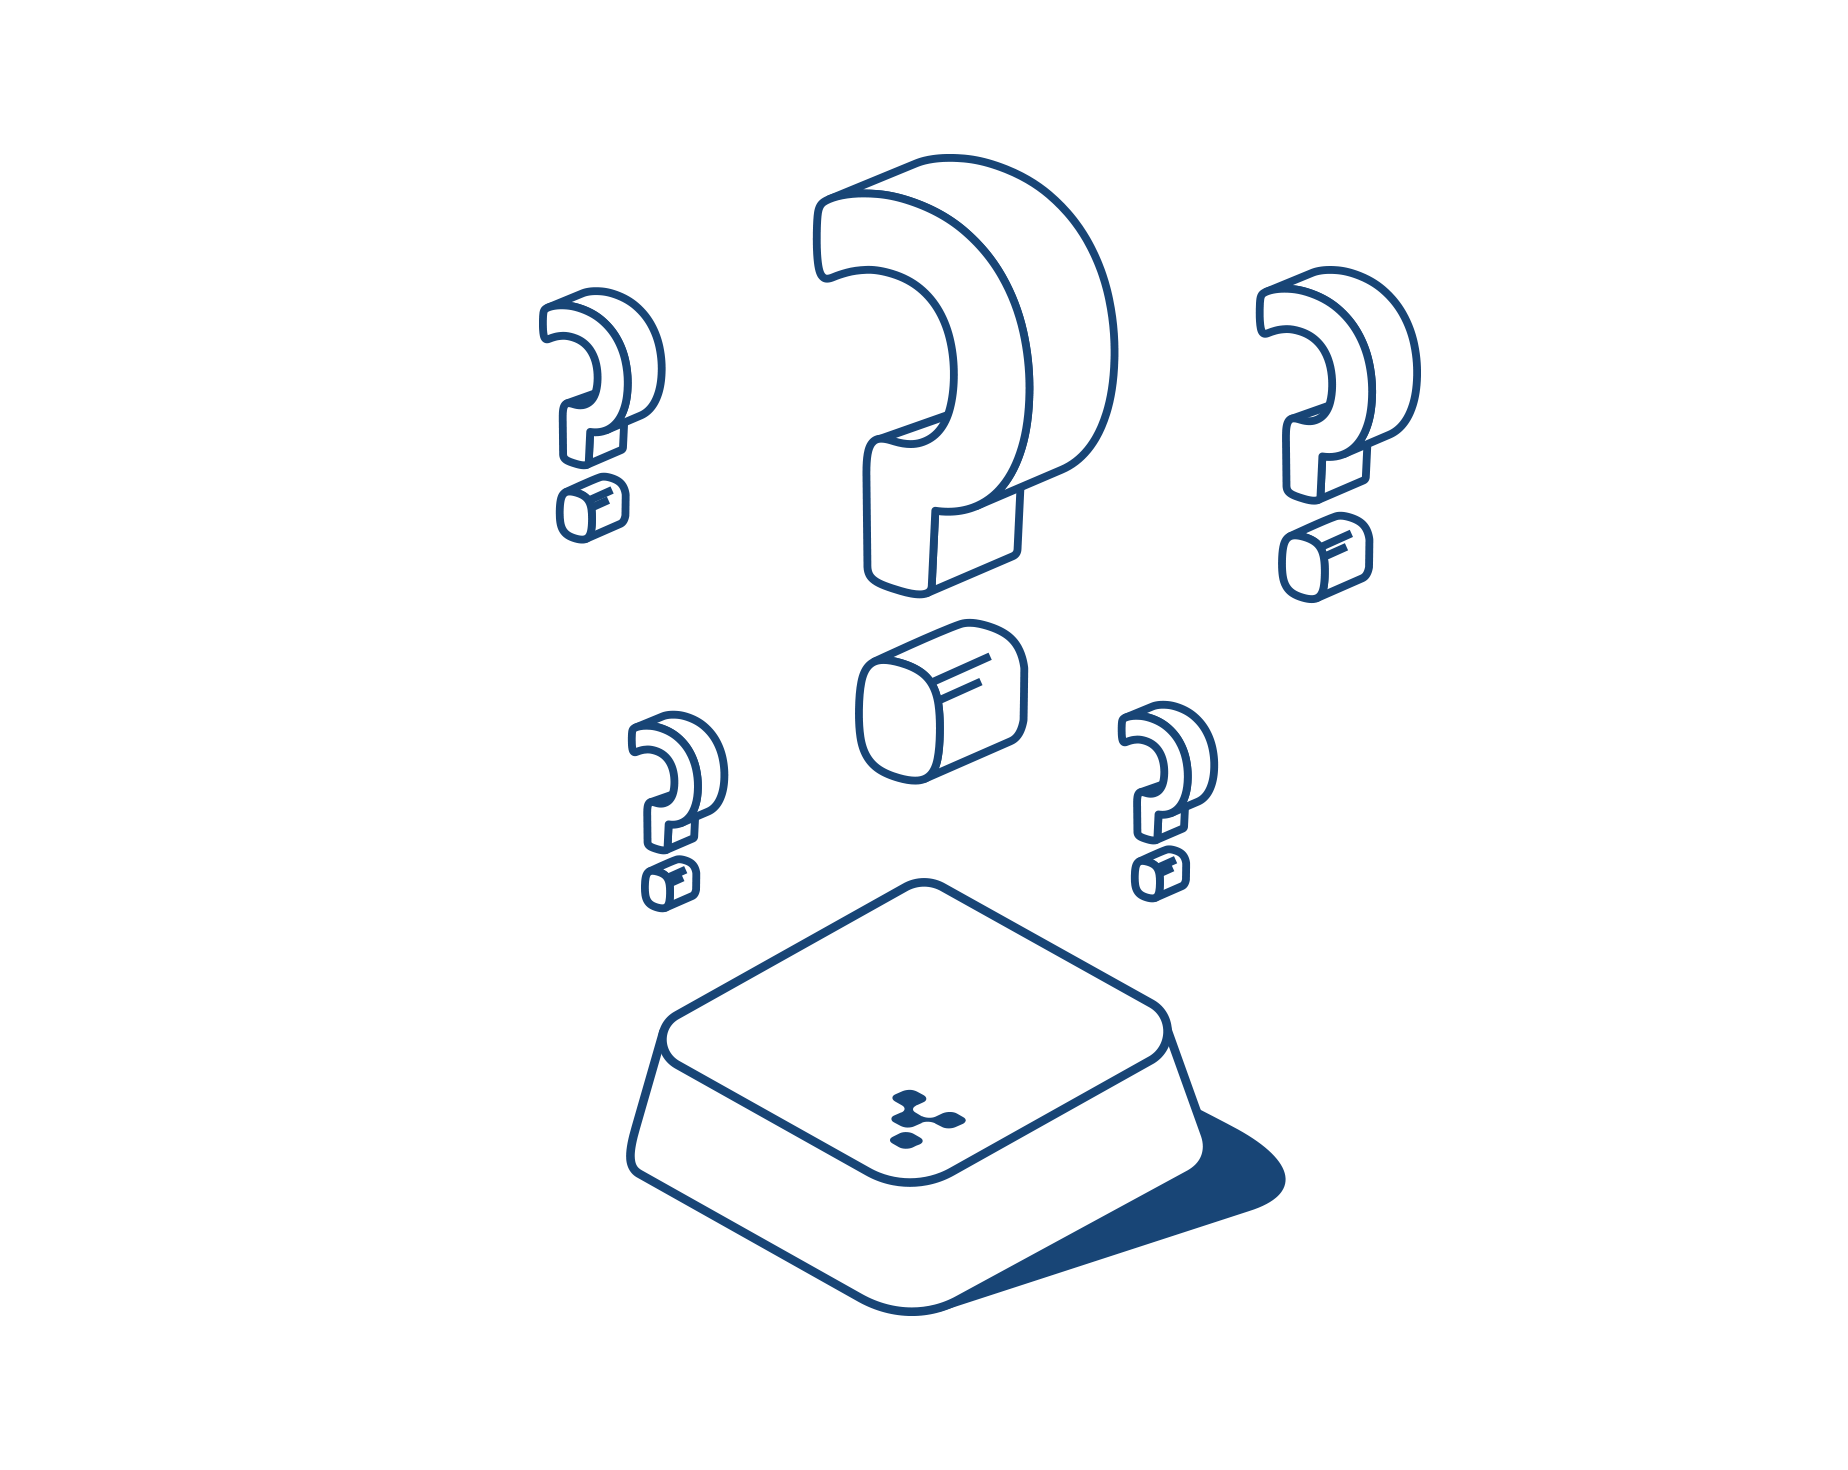 question-marks.png